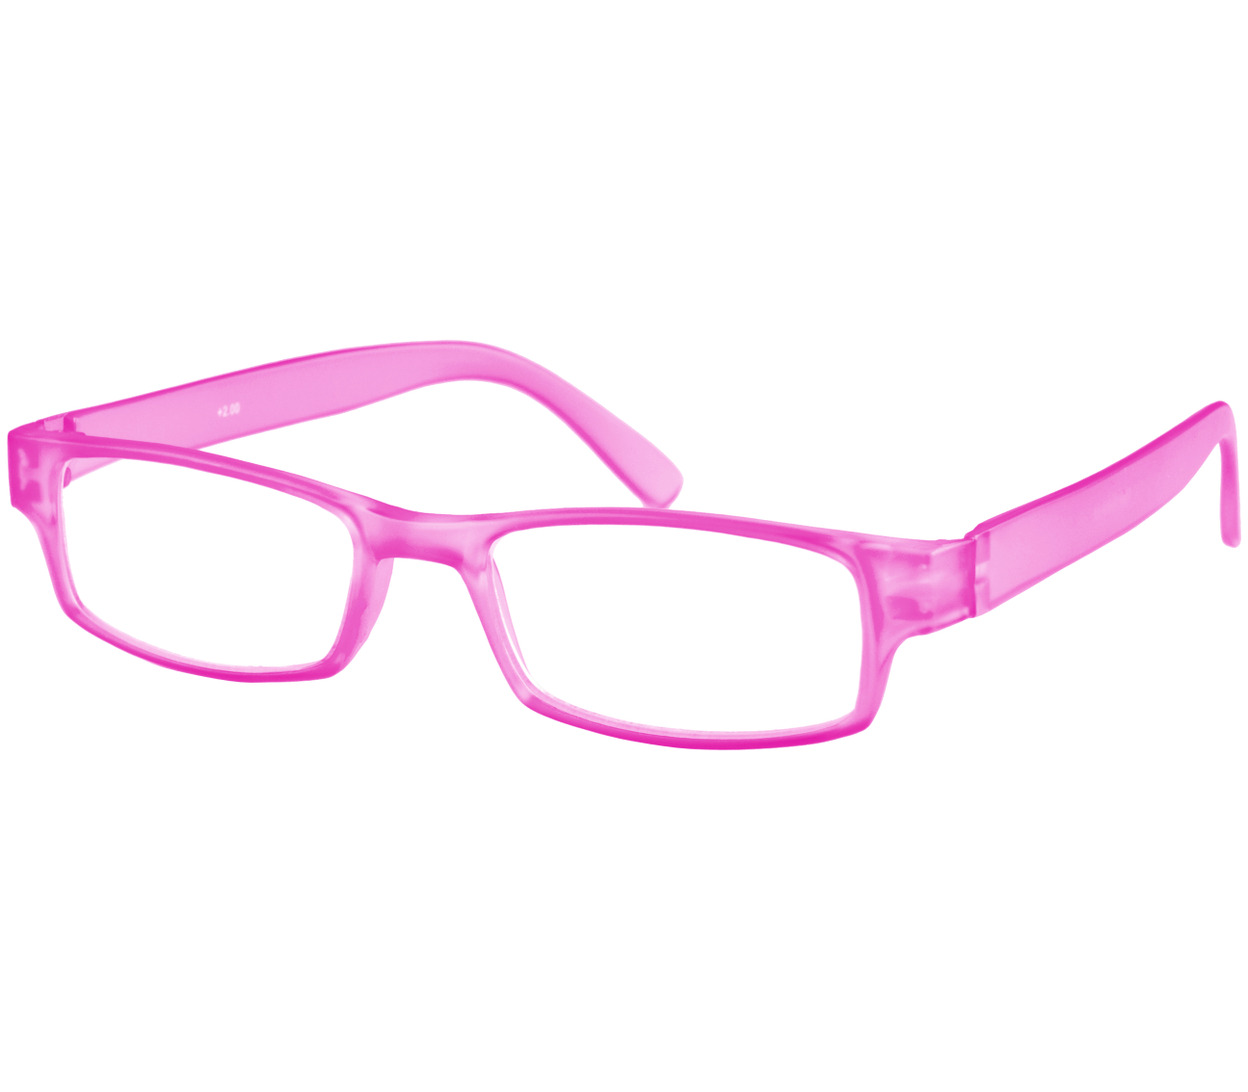 Friski (Pink) Classic Reading Glasses